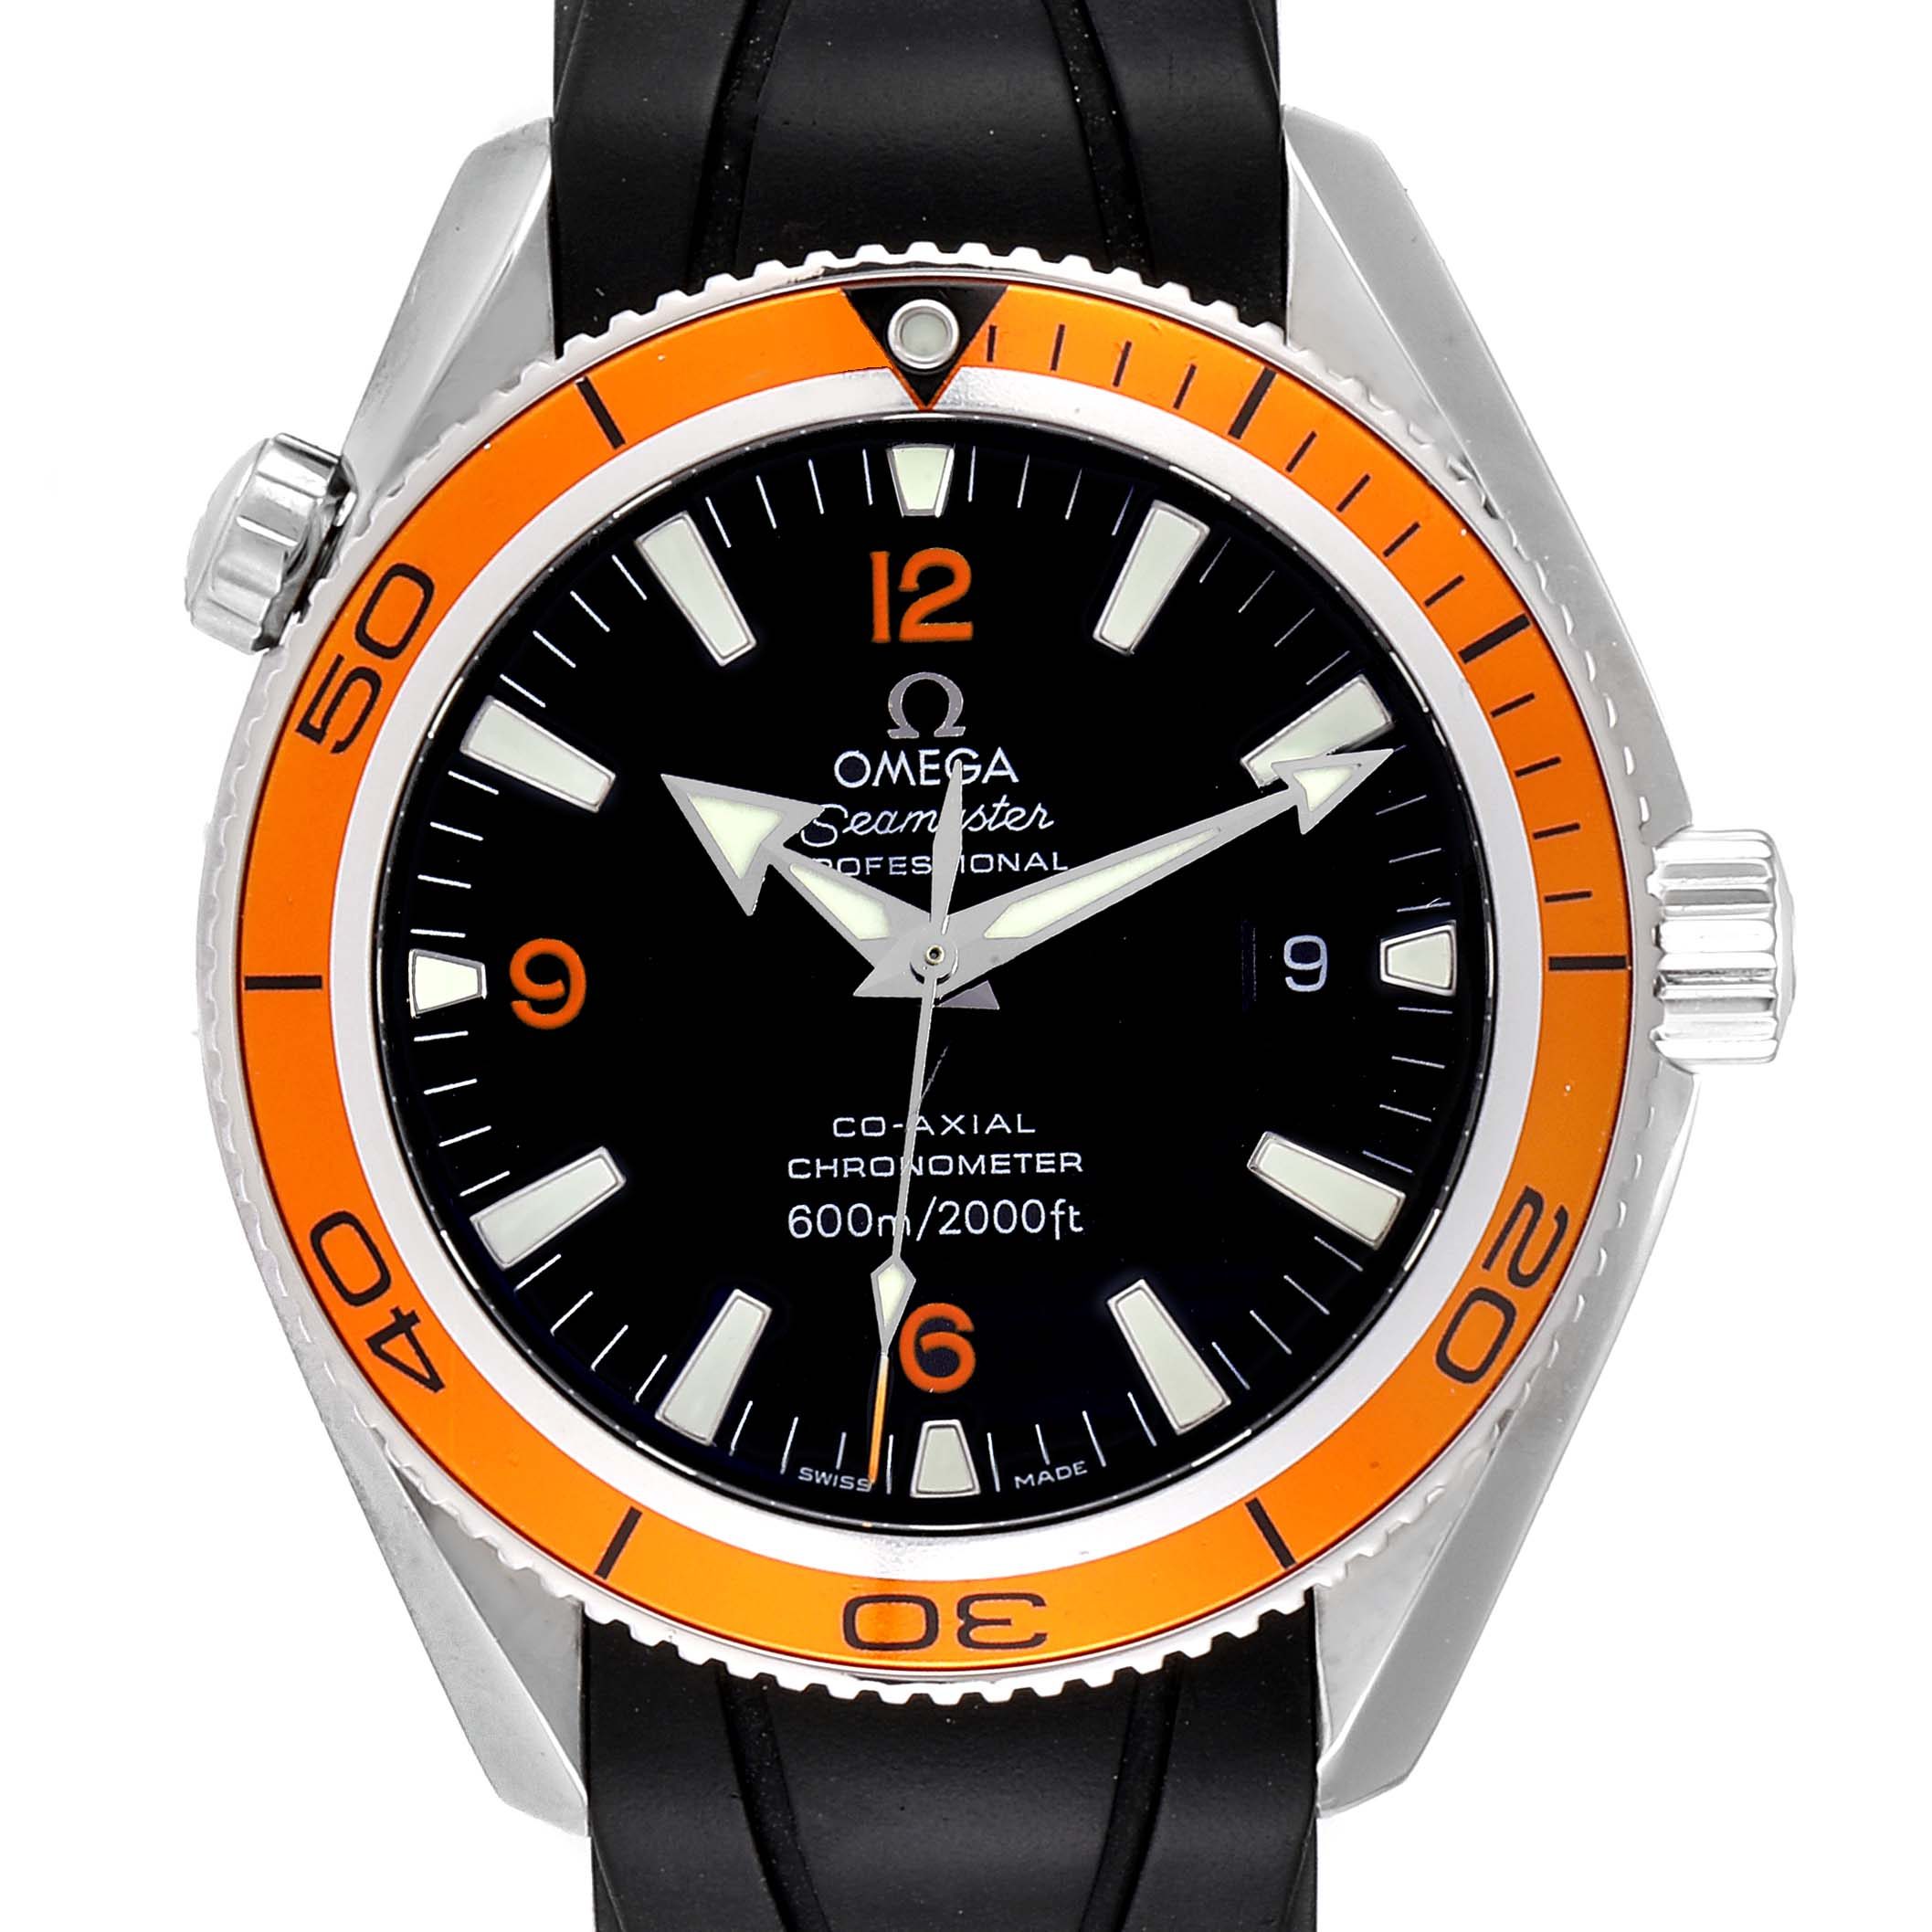 Omega Seamaster Planet Ocean Rubber Strap Mens Watch 2909.50.91 Box Card